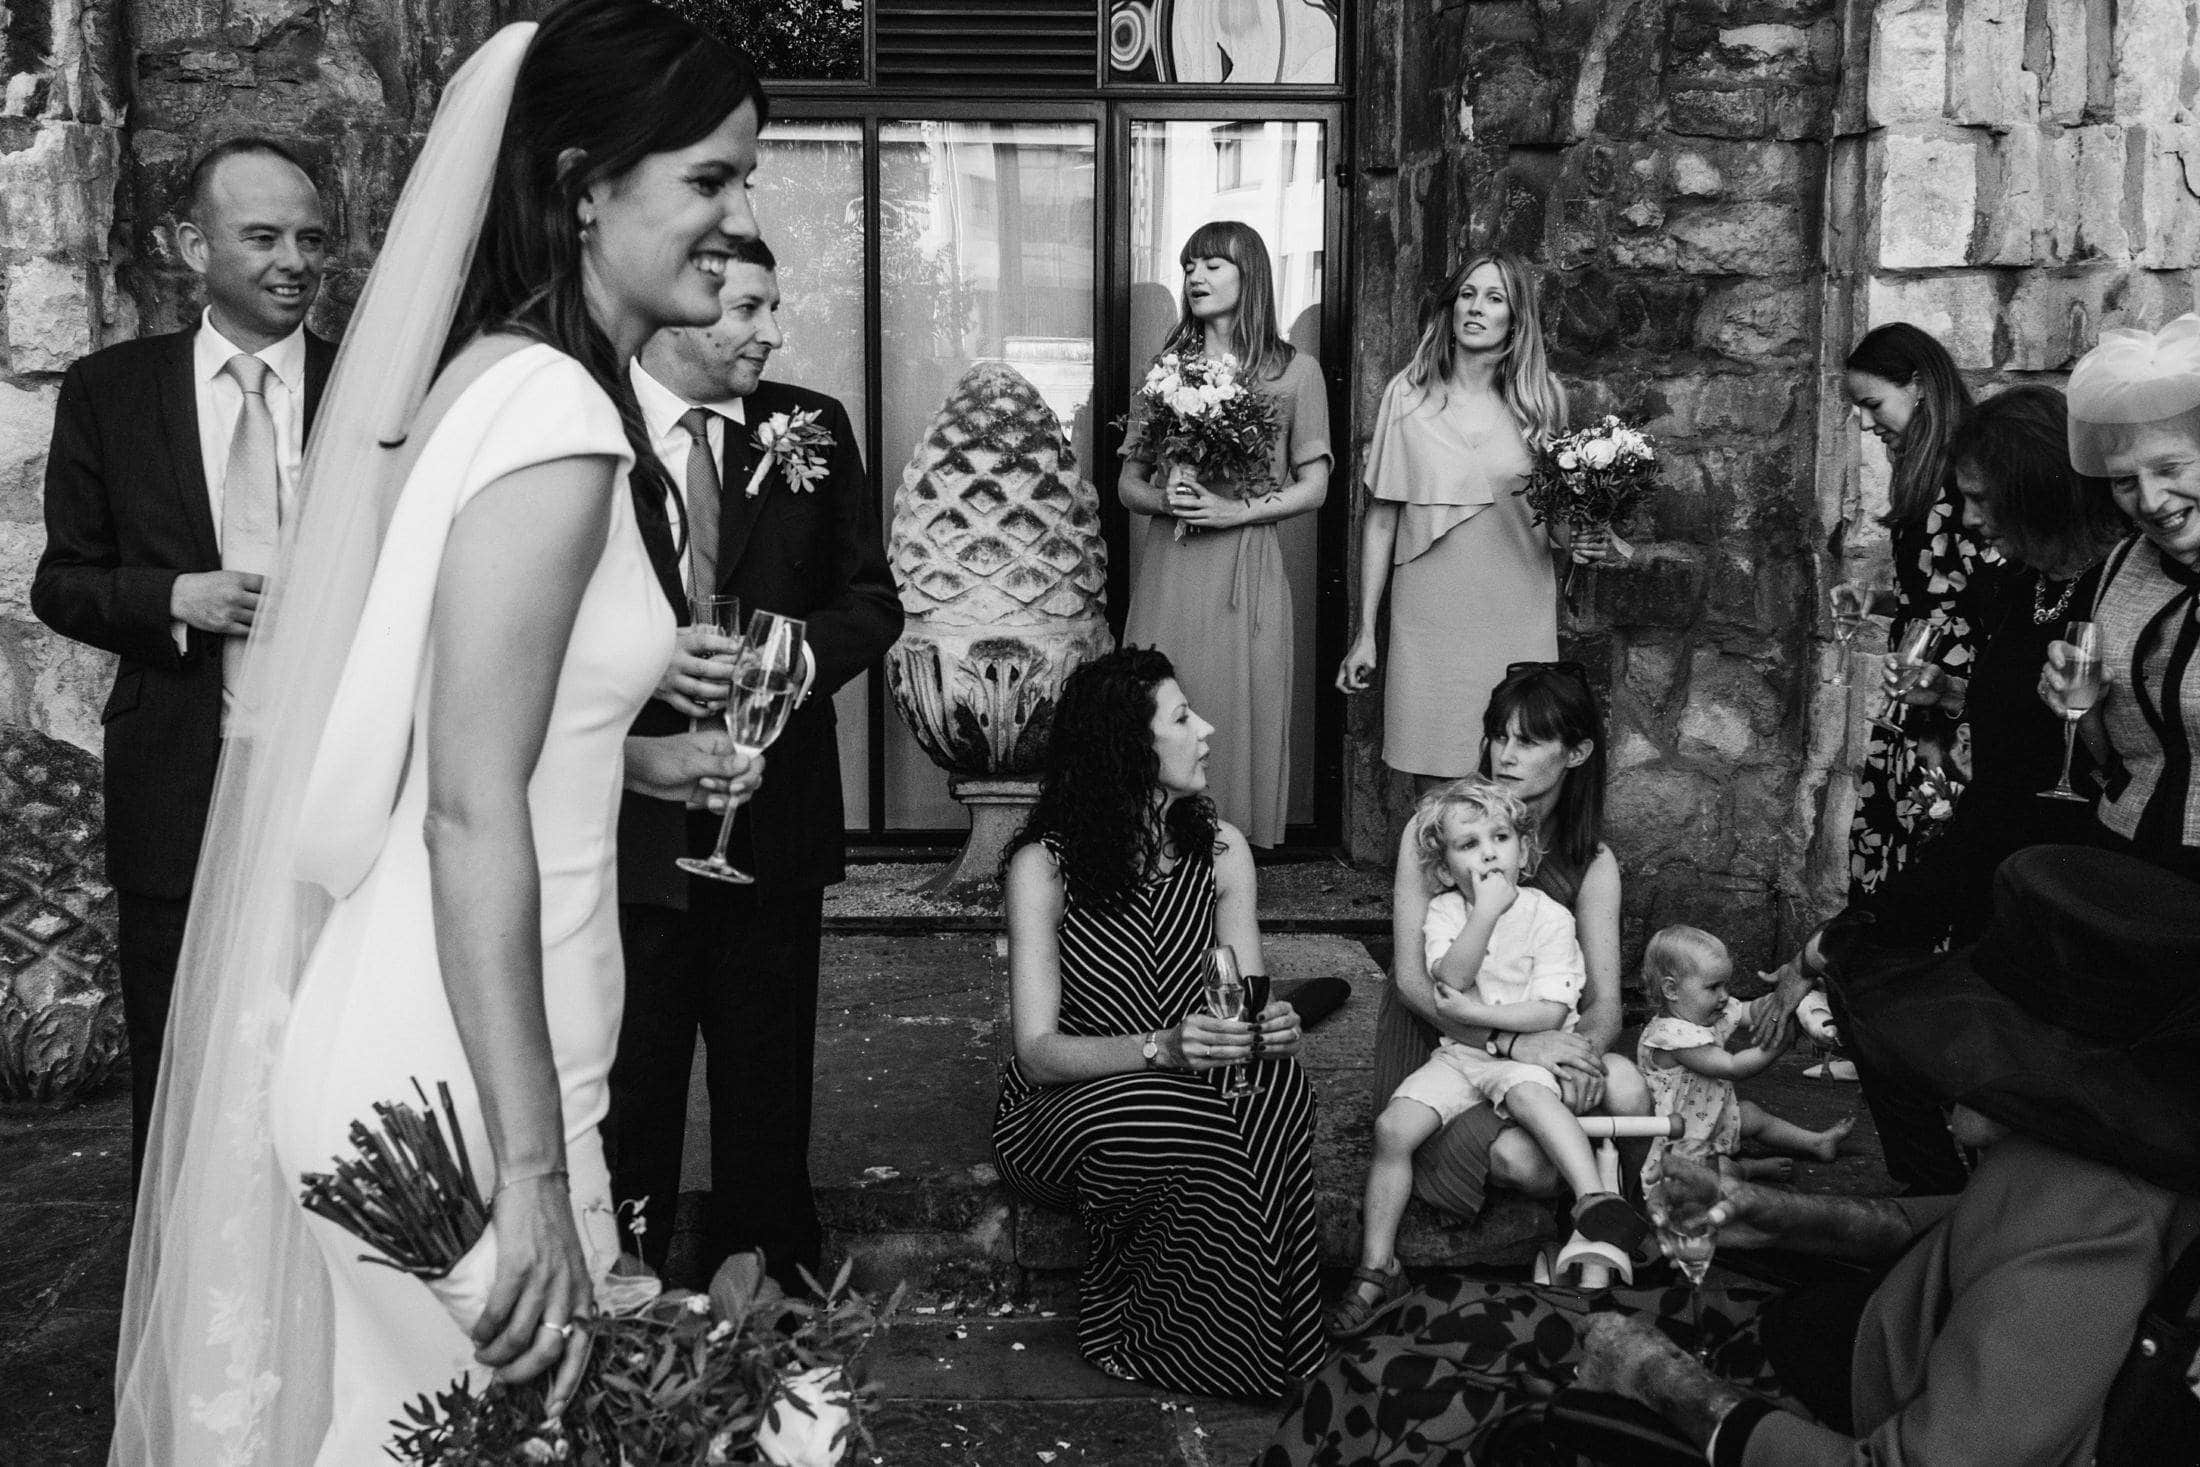 Black & white intimate London wedding photograph during an outdoor wedding reception.